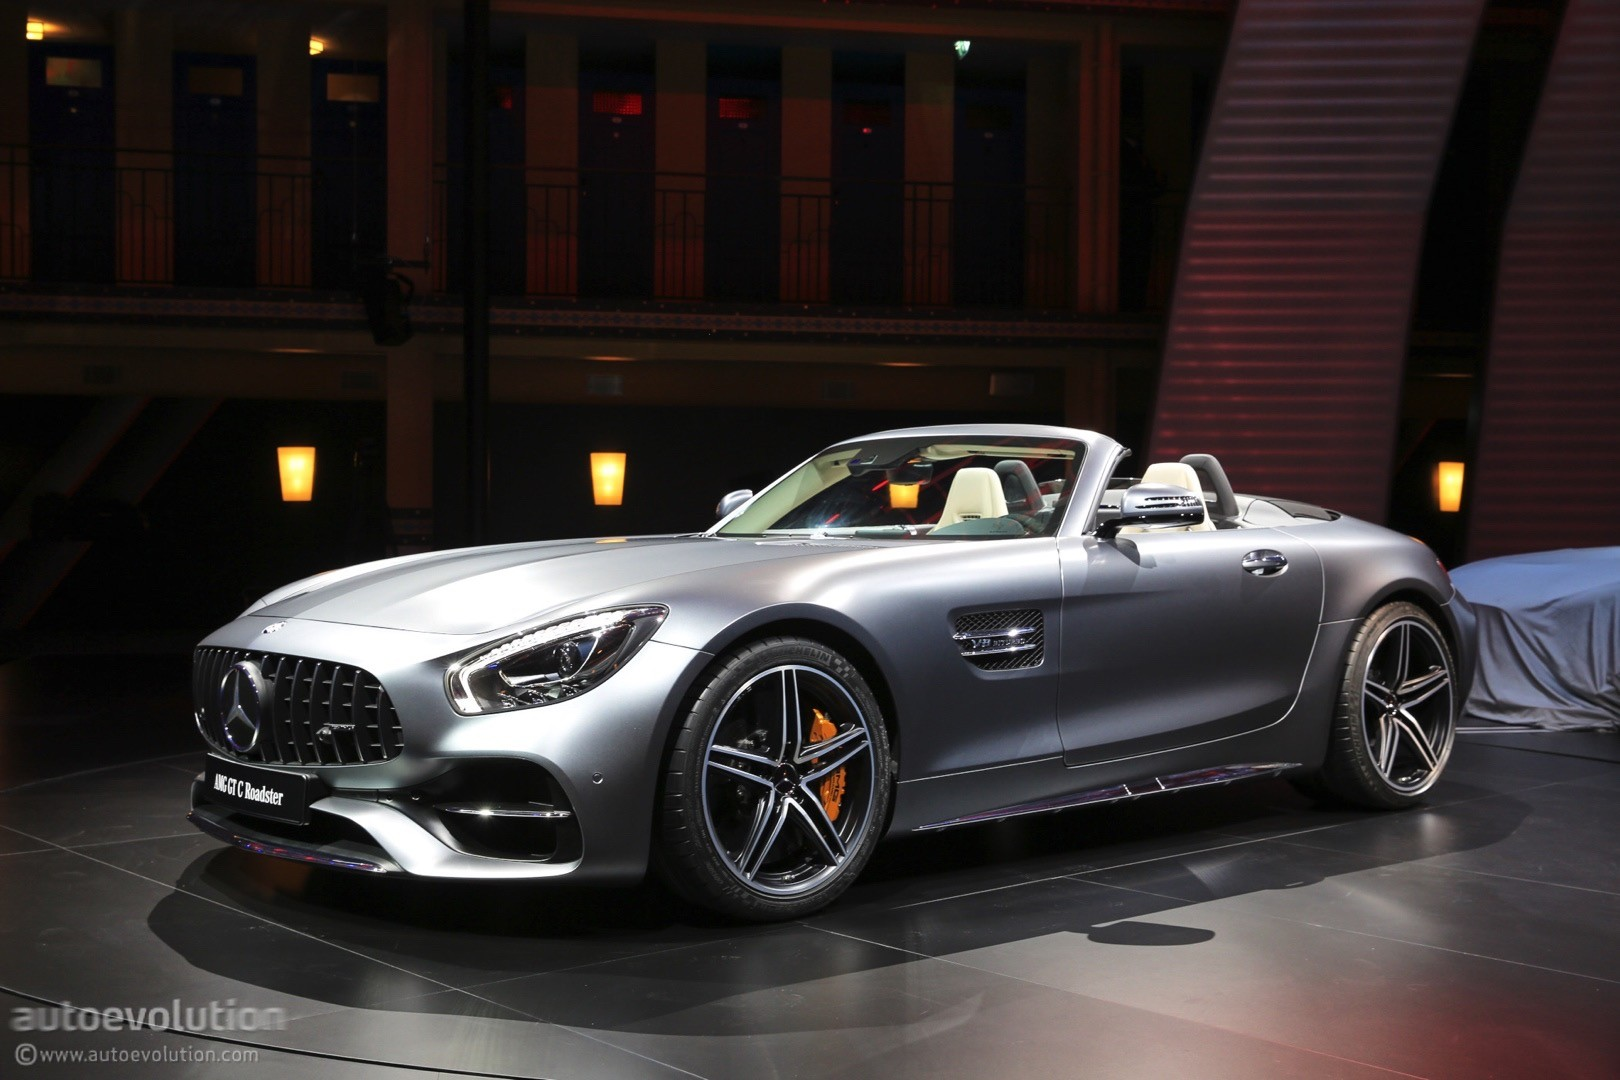 Mercedes amg refreshes price list for amg gt family gt r for Mercedes benz prices list